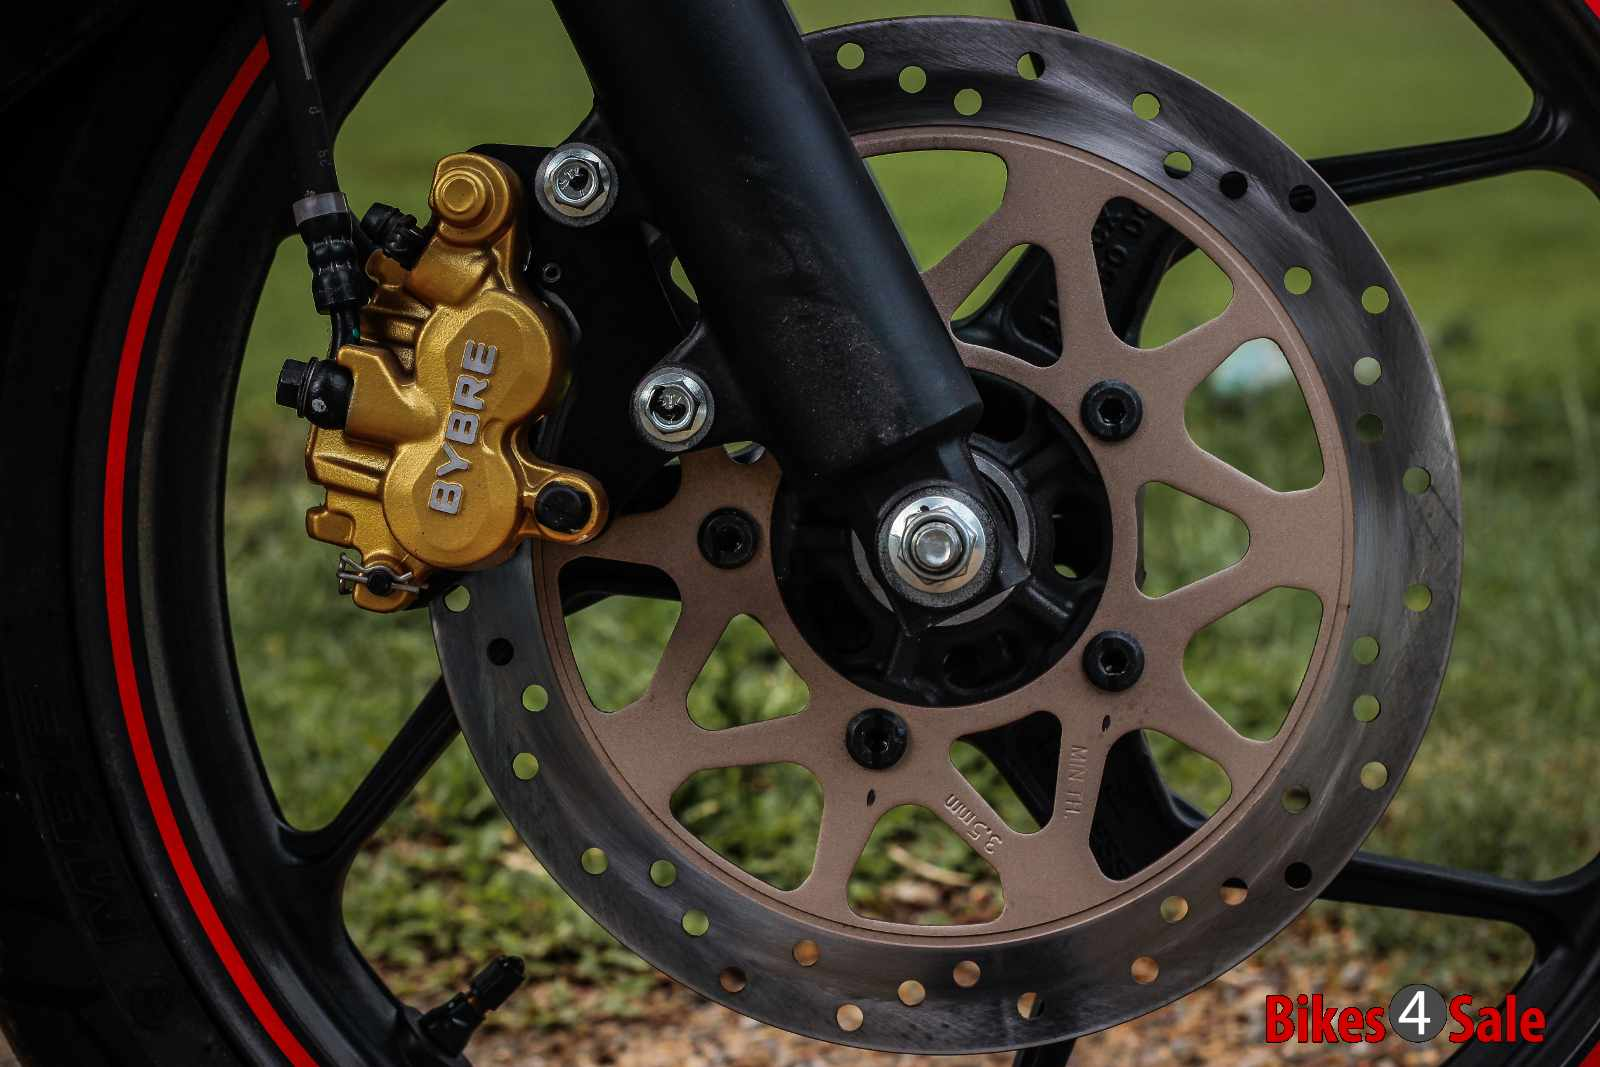 Suzuki Gixxer Sf Fi front disc brake with BRYBE caliper